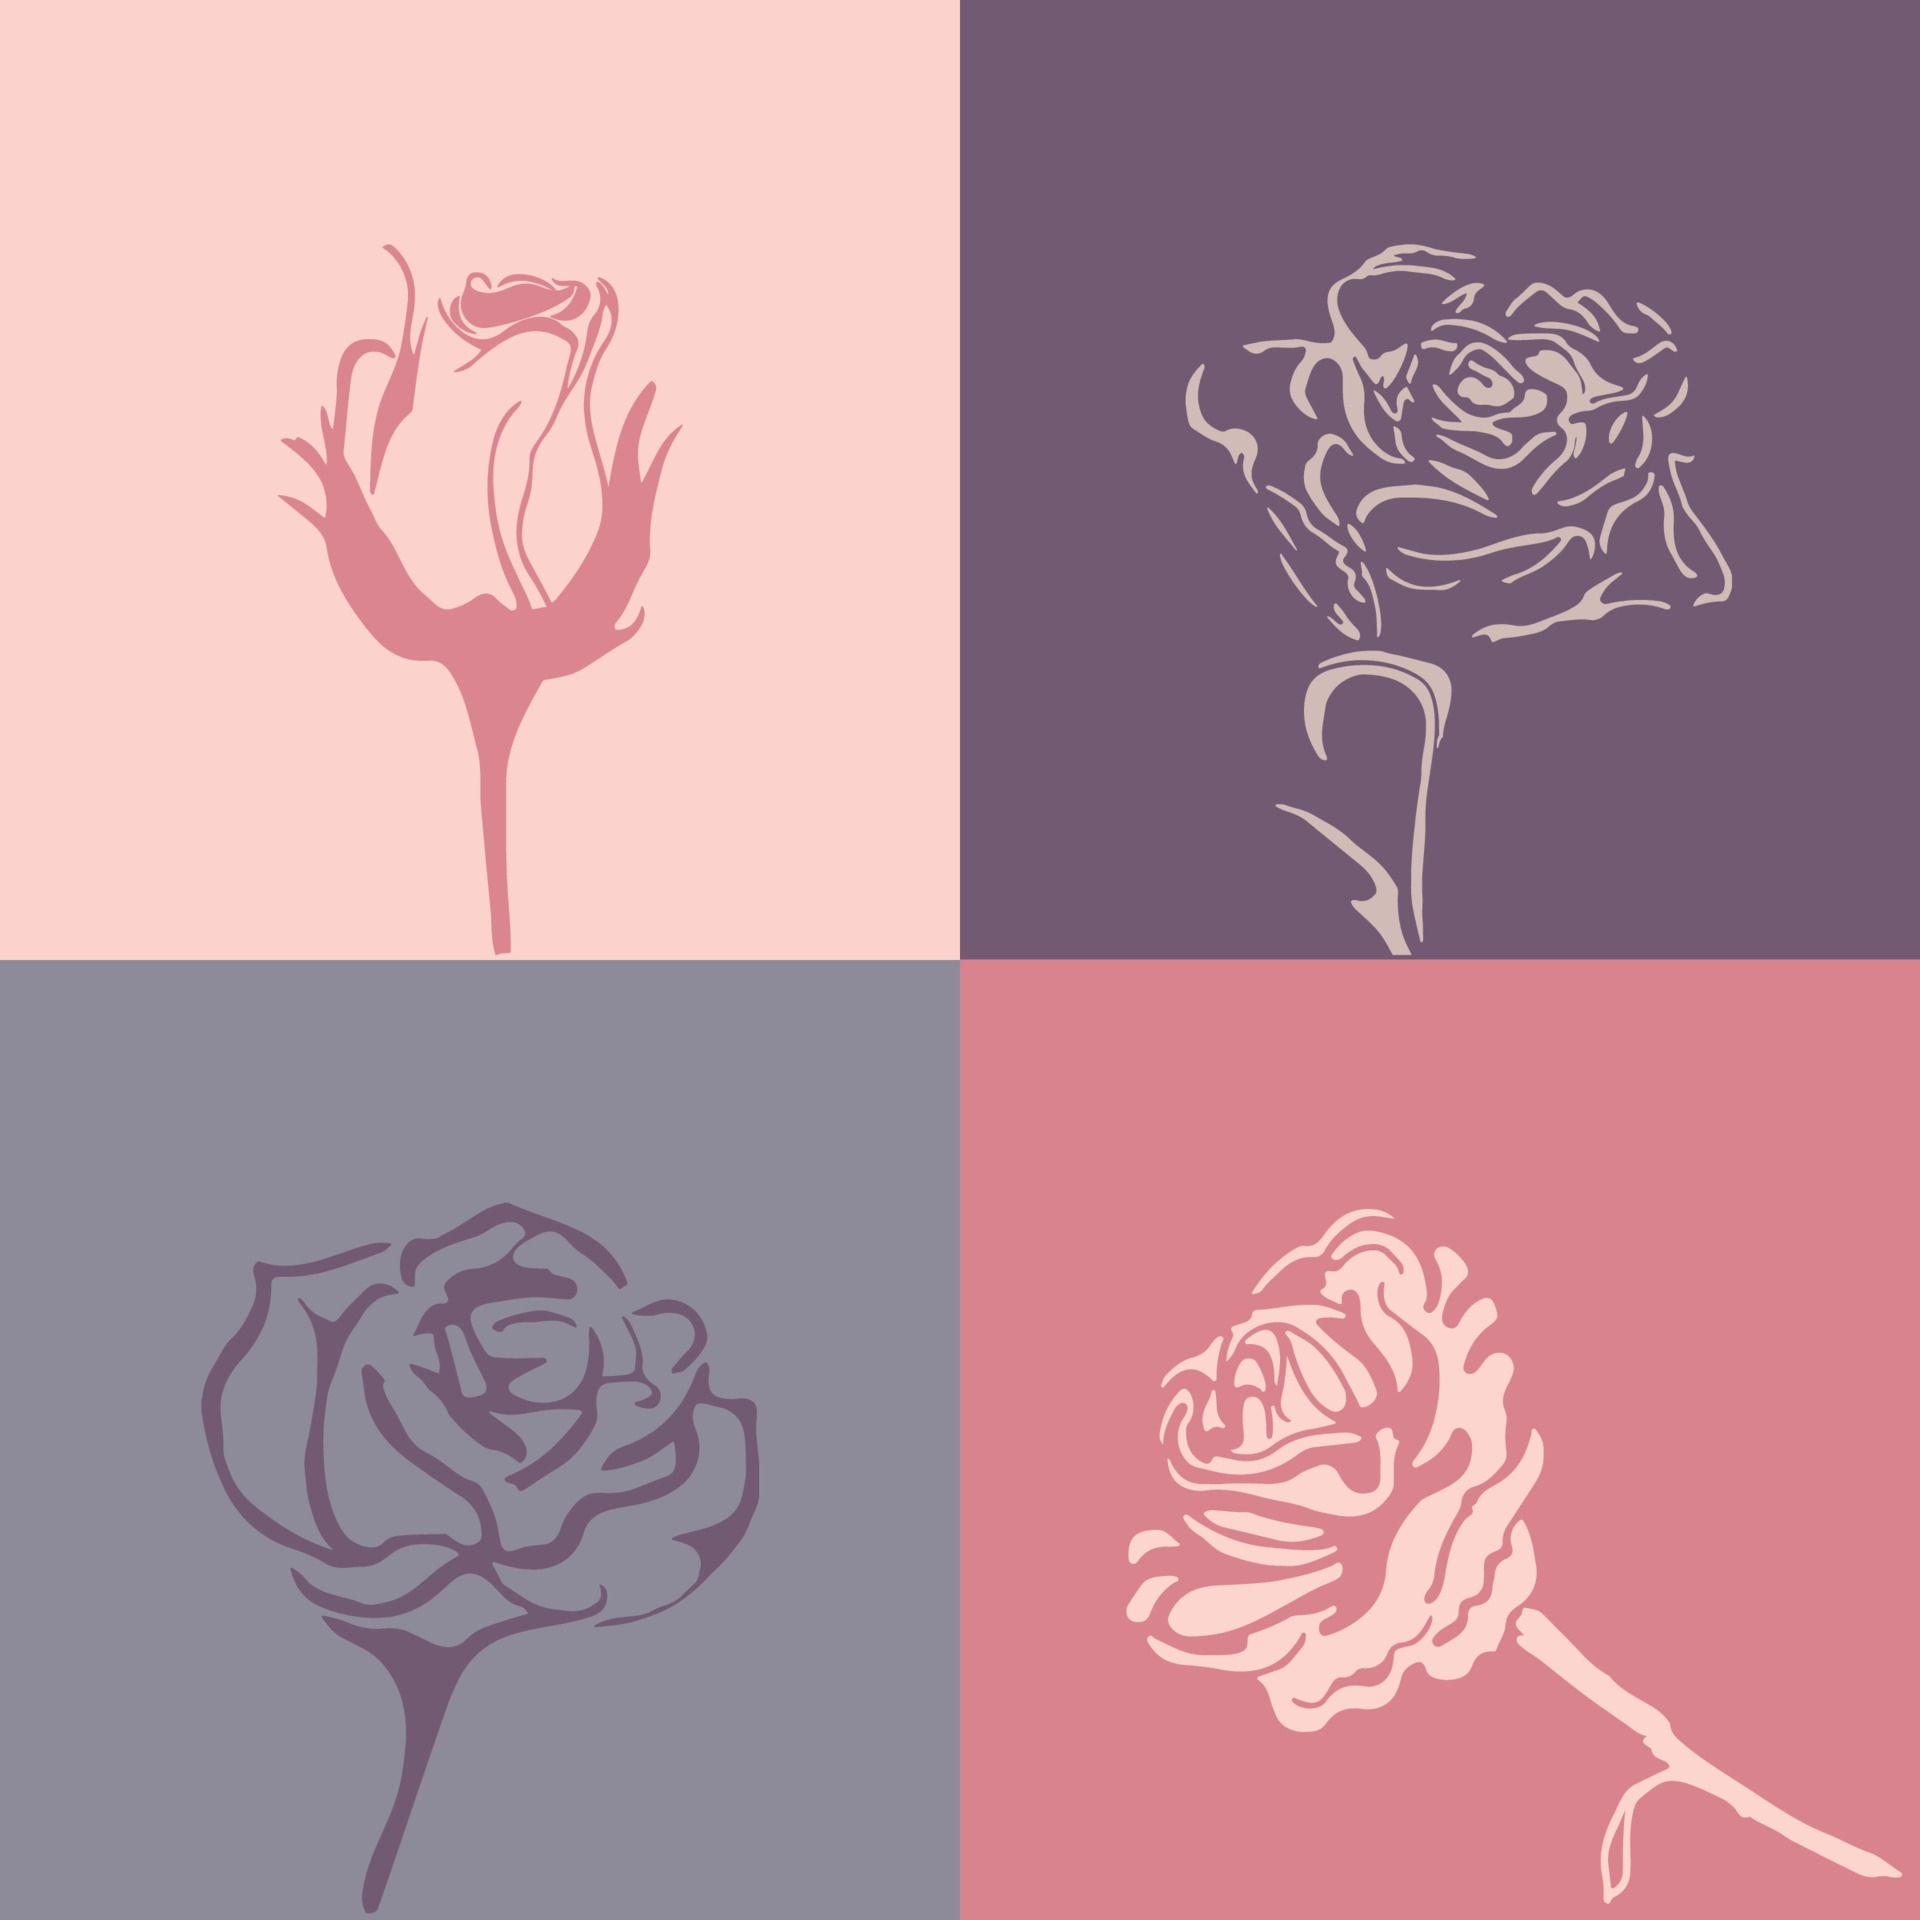 silhouette of roses for valentine s day in vintage style for card and seamless background free vector